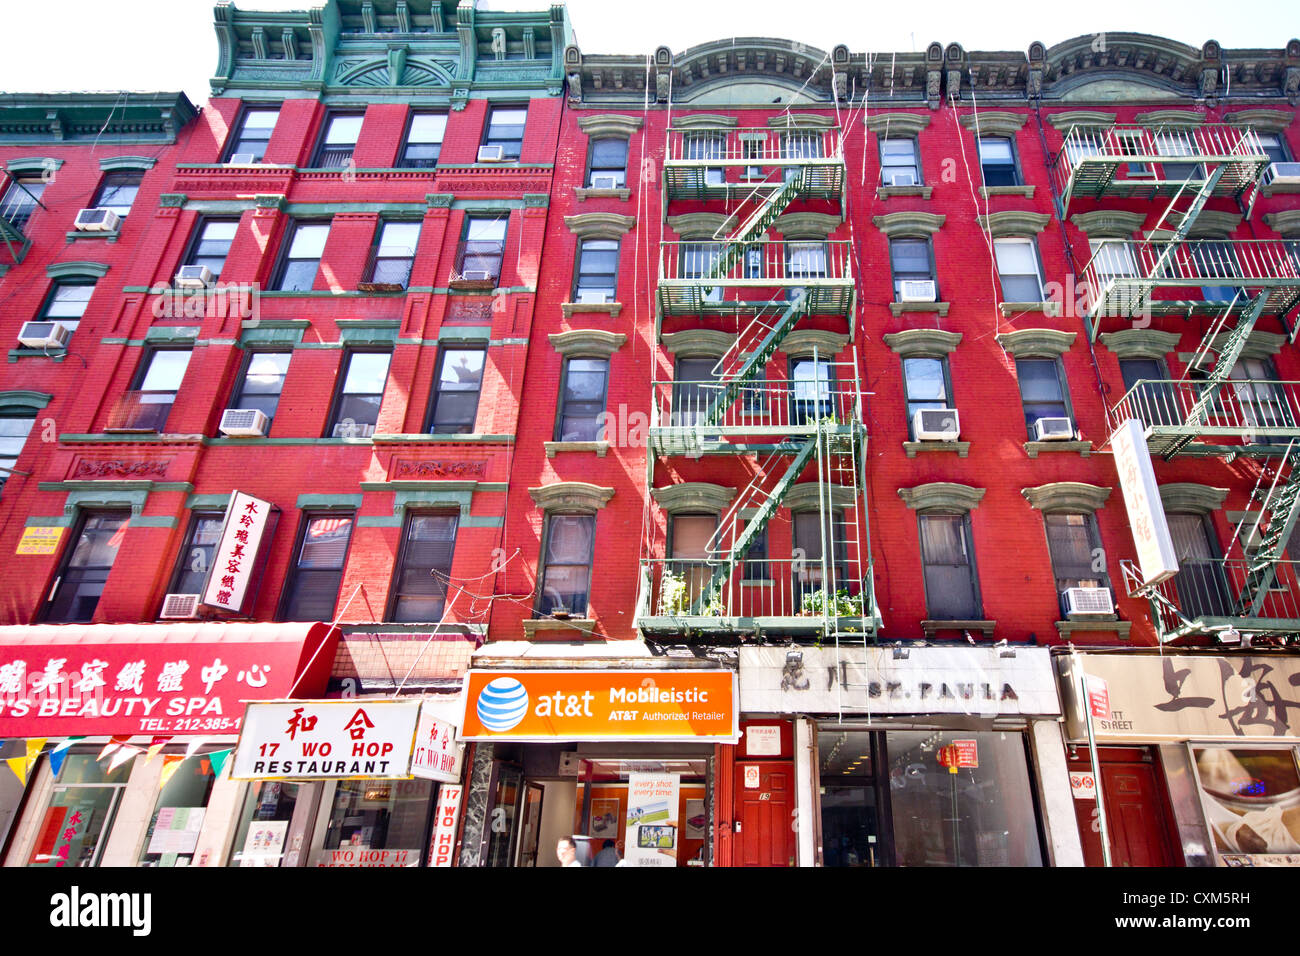 New York City - Aug 29:  Historic tenement apartment buildings and businesses in New York City Chinatown on August Stock Photo